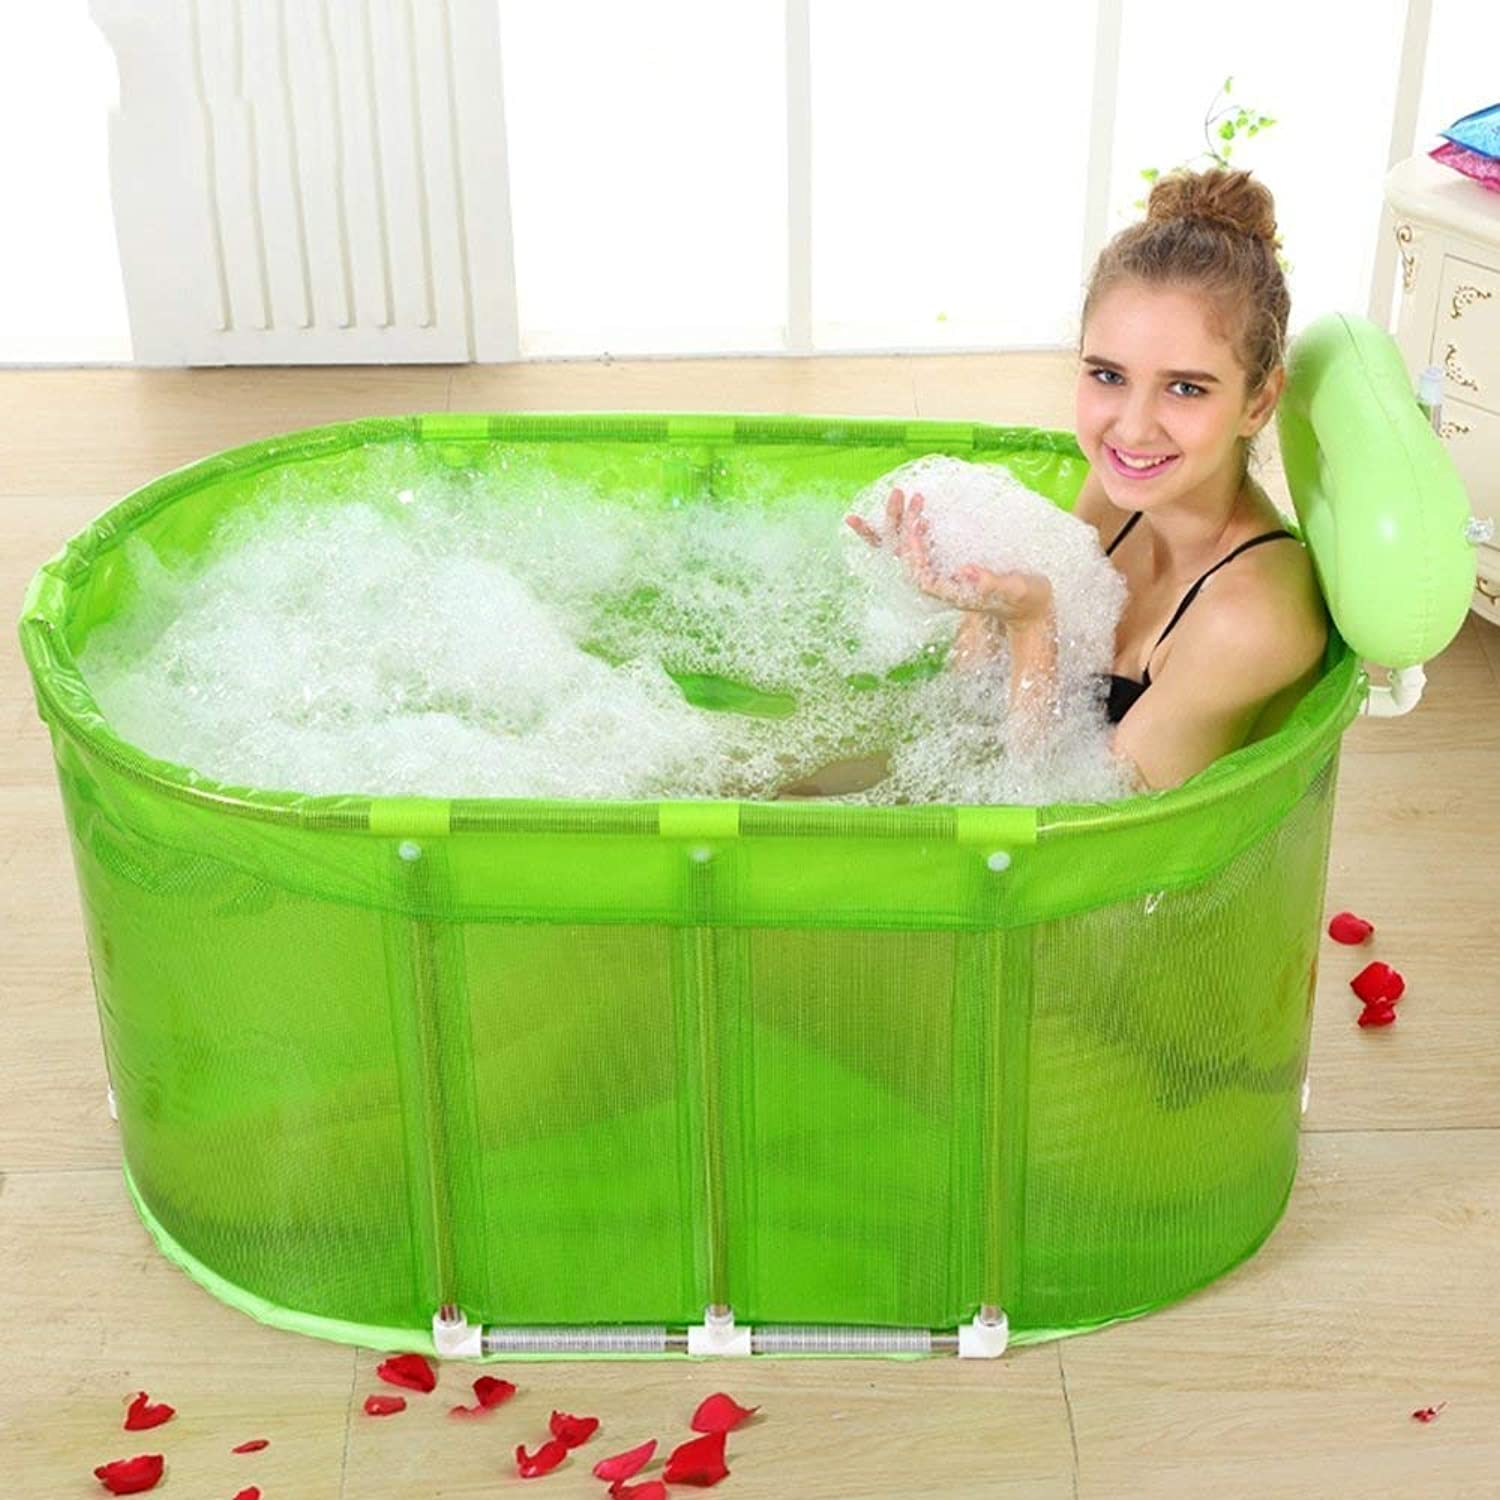 Bathtub, Pools Folding Tub Sauna and Dual-use Plus Large Foam Bucket Adult Stainless Steel stentBathtubs Inflatable -A